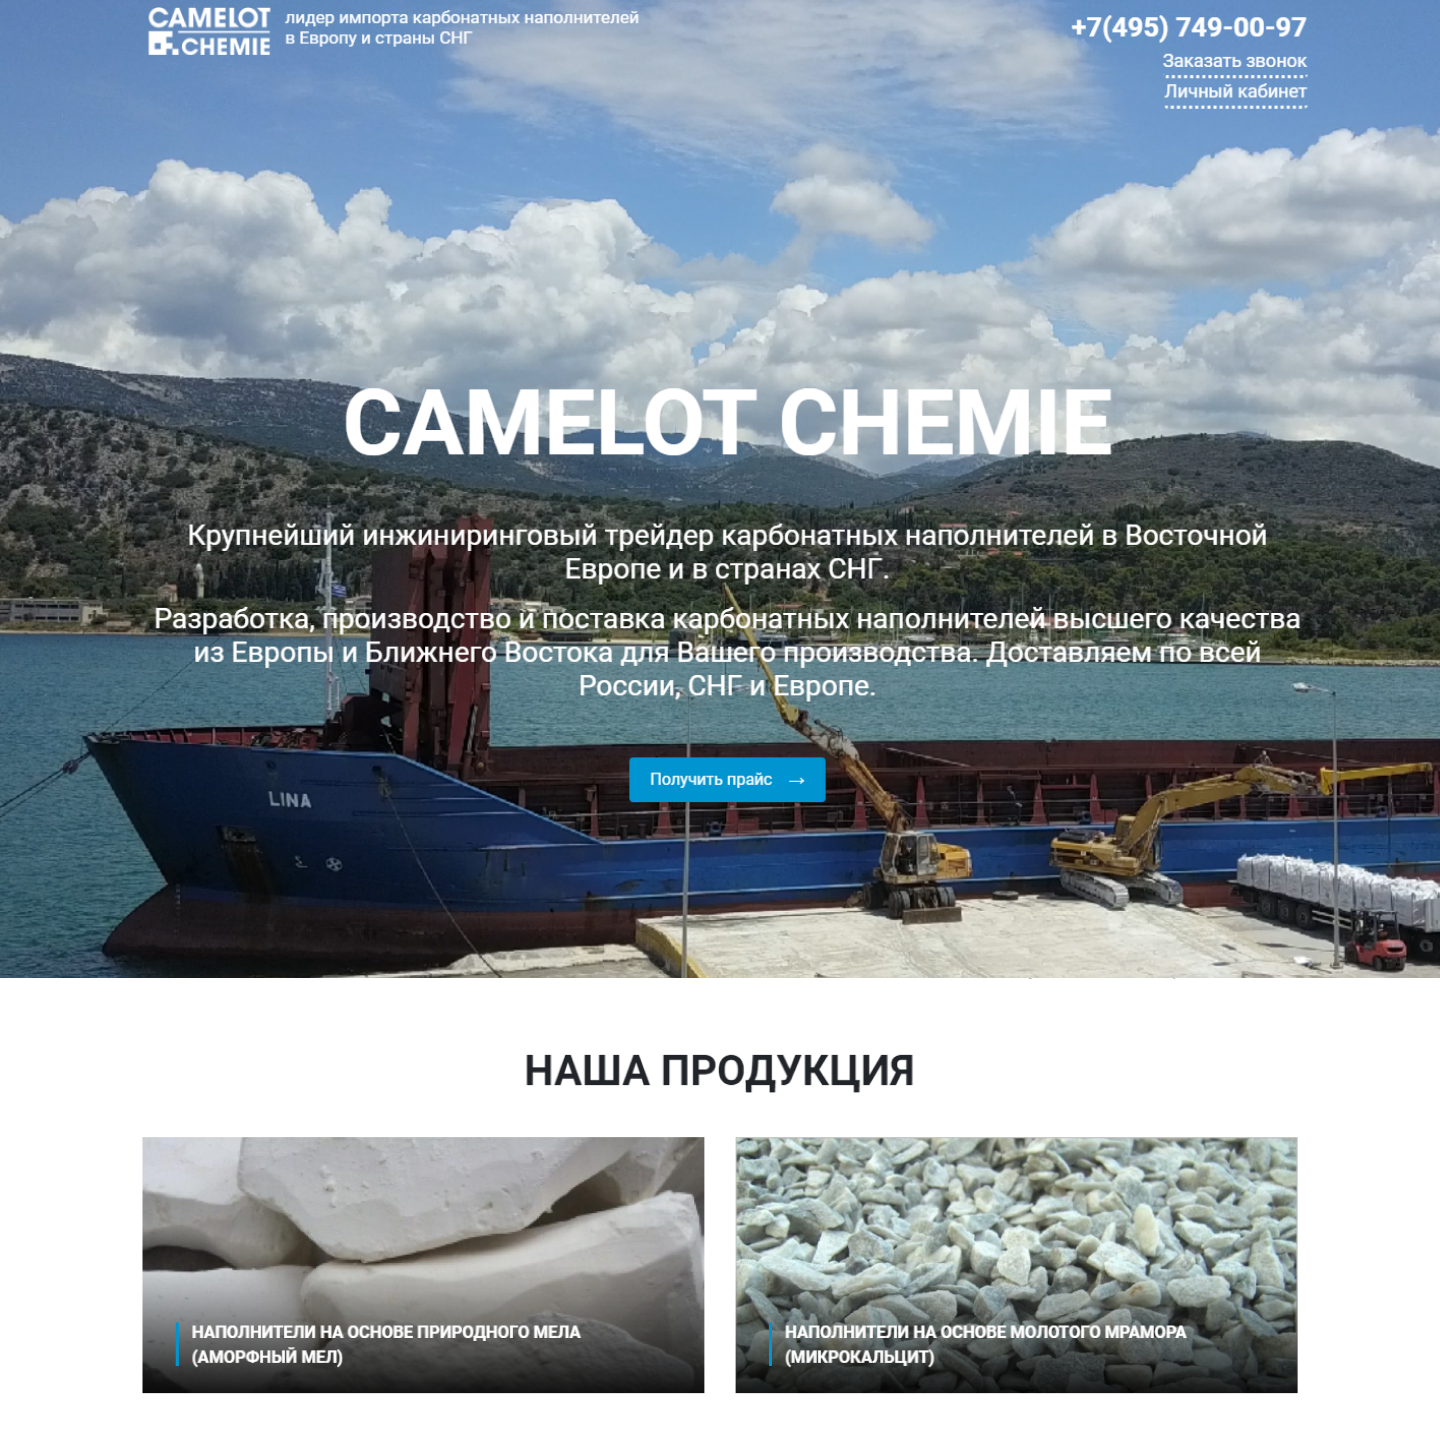 Camelot Chemie